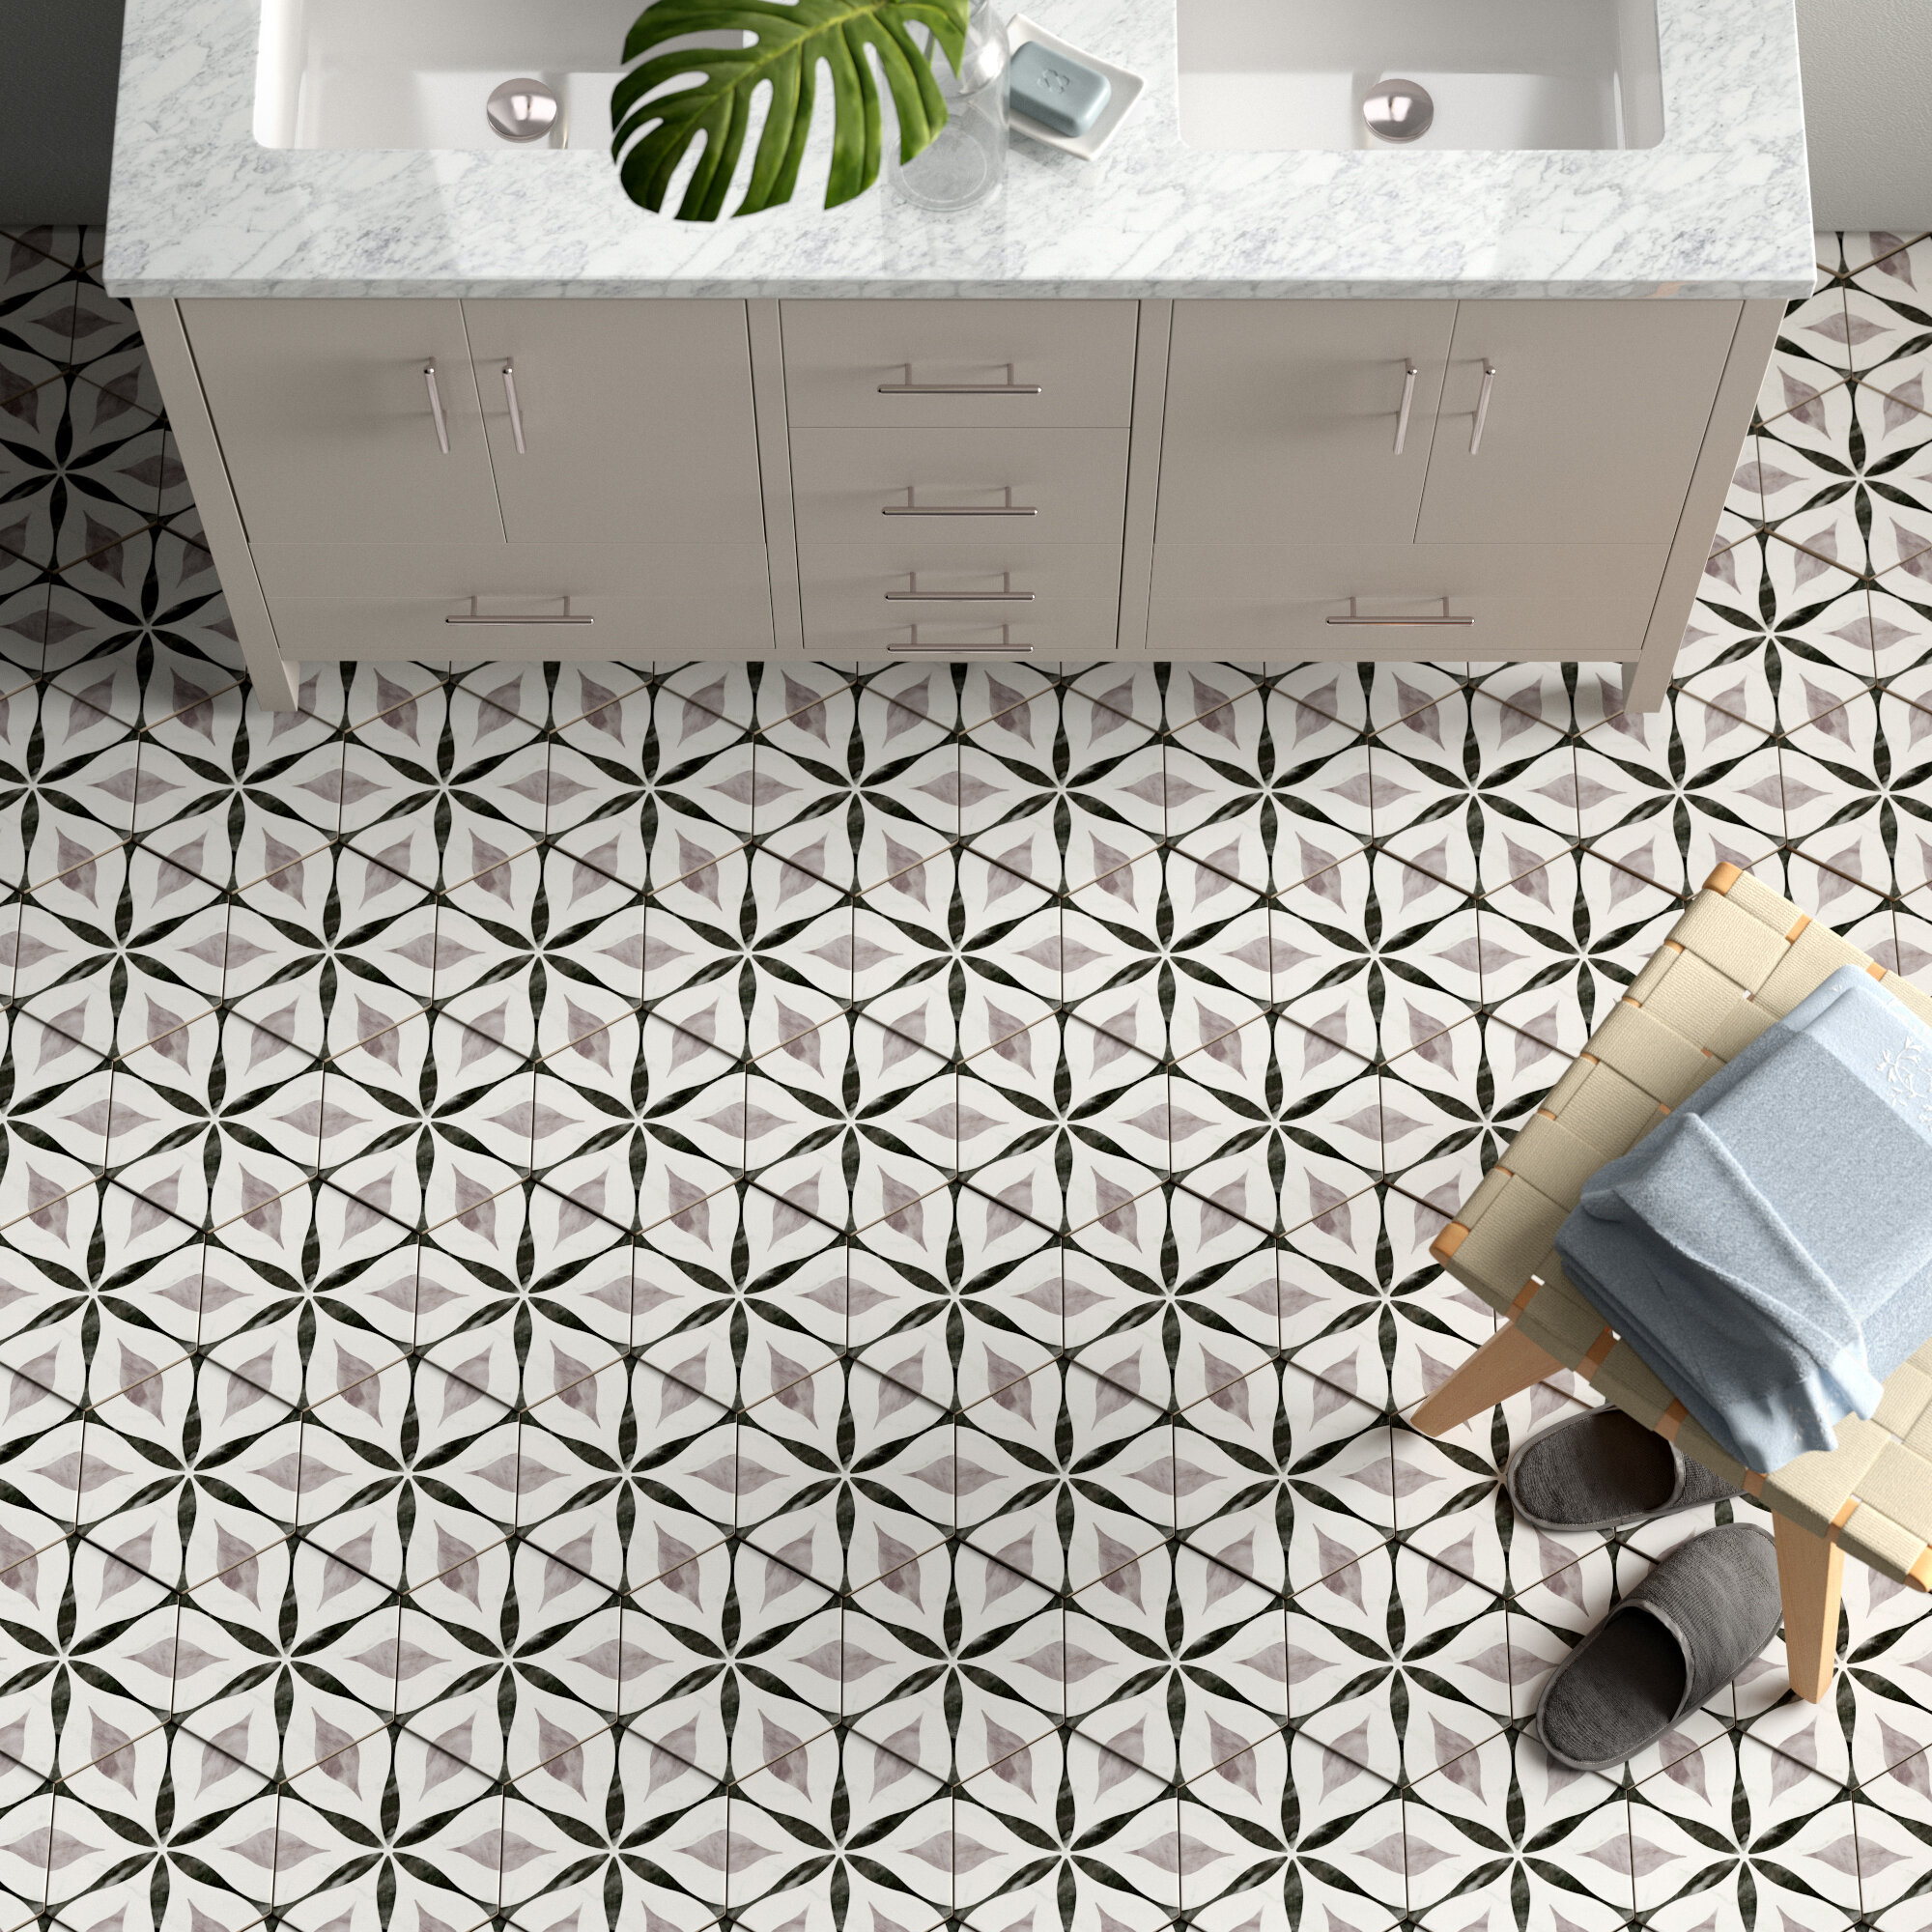 Marvelous Find The Perfect Patterned Tile Wayfair Download Free Architecture Designs Scobabritishbridgeorg